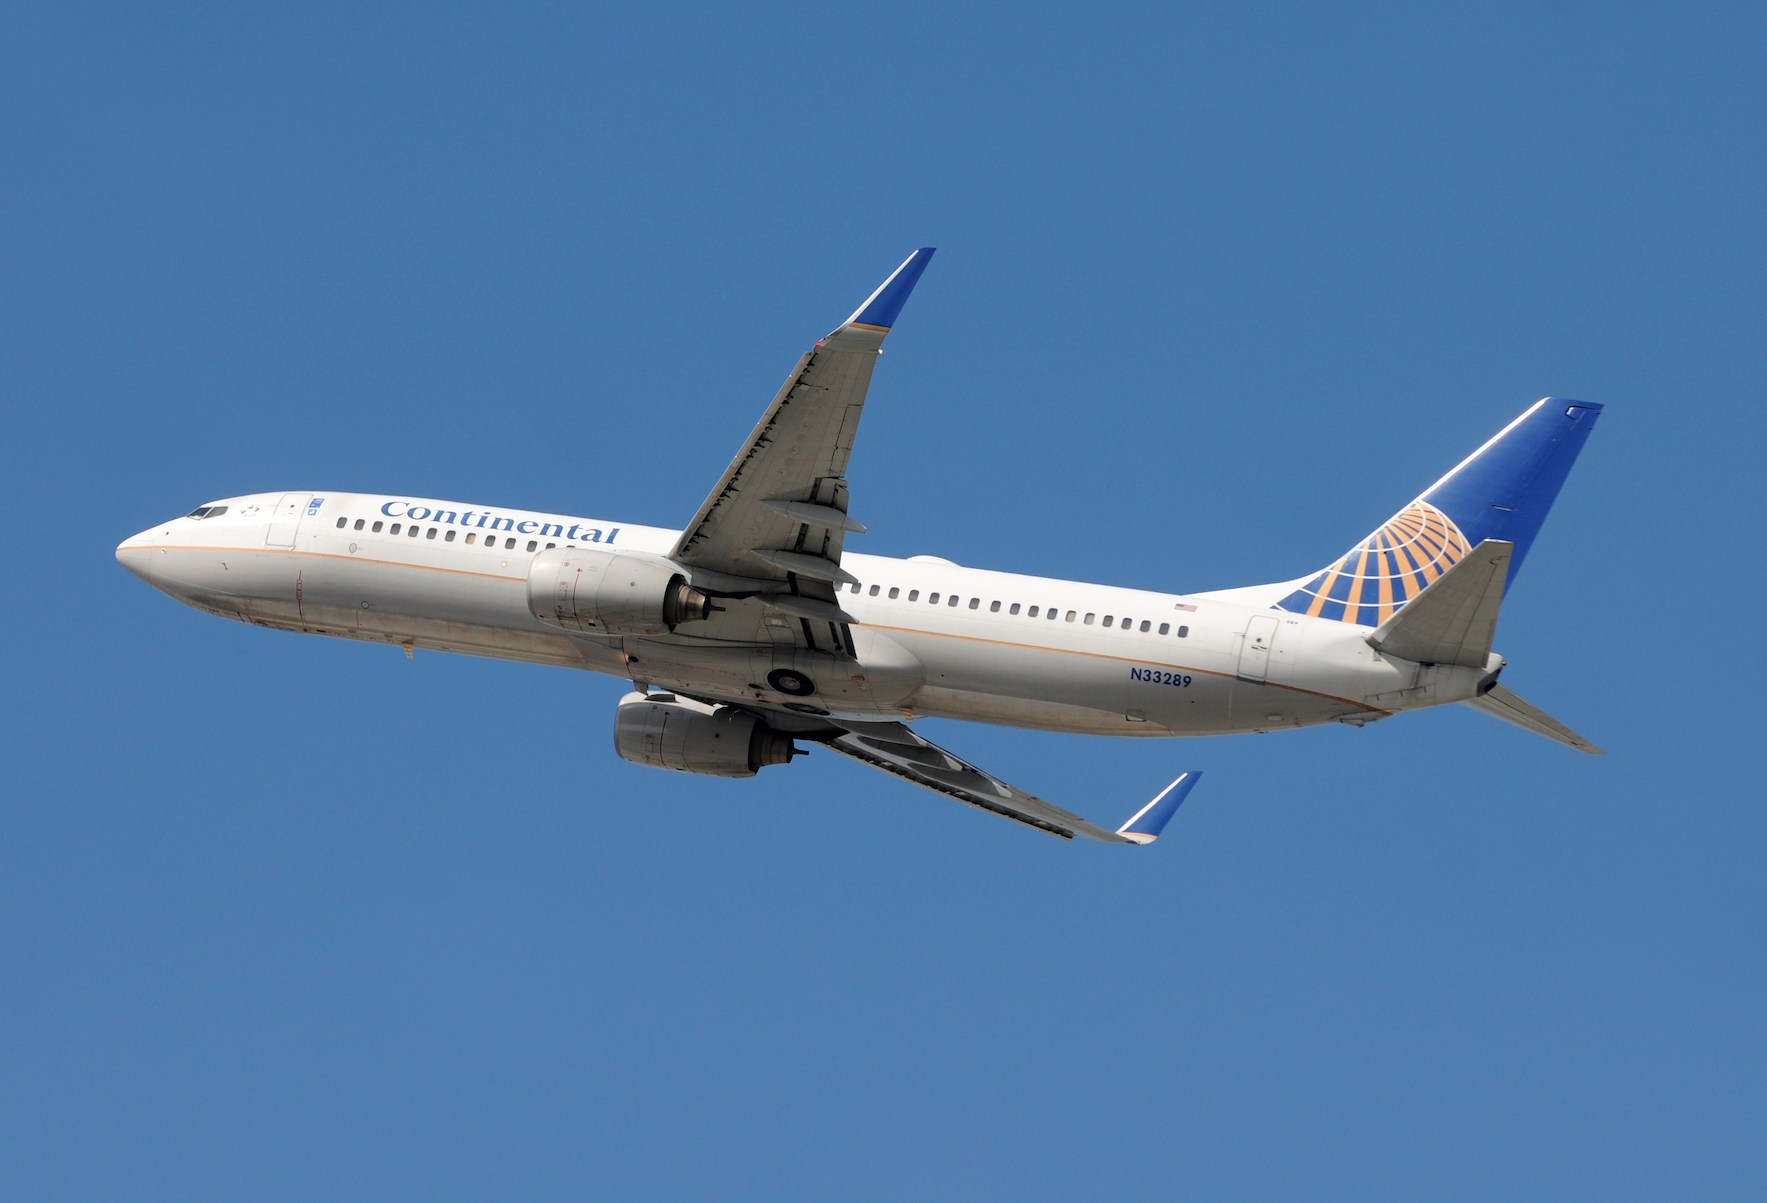 Continental Airlines 737 passenger jet